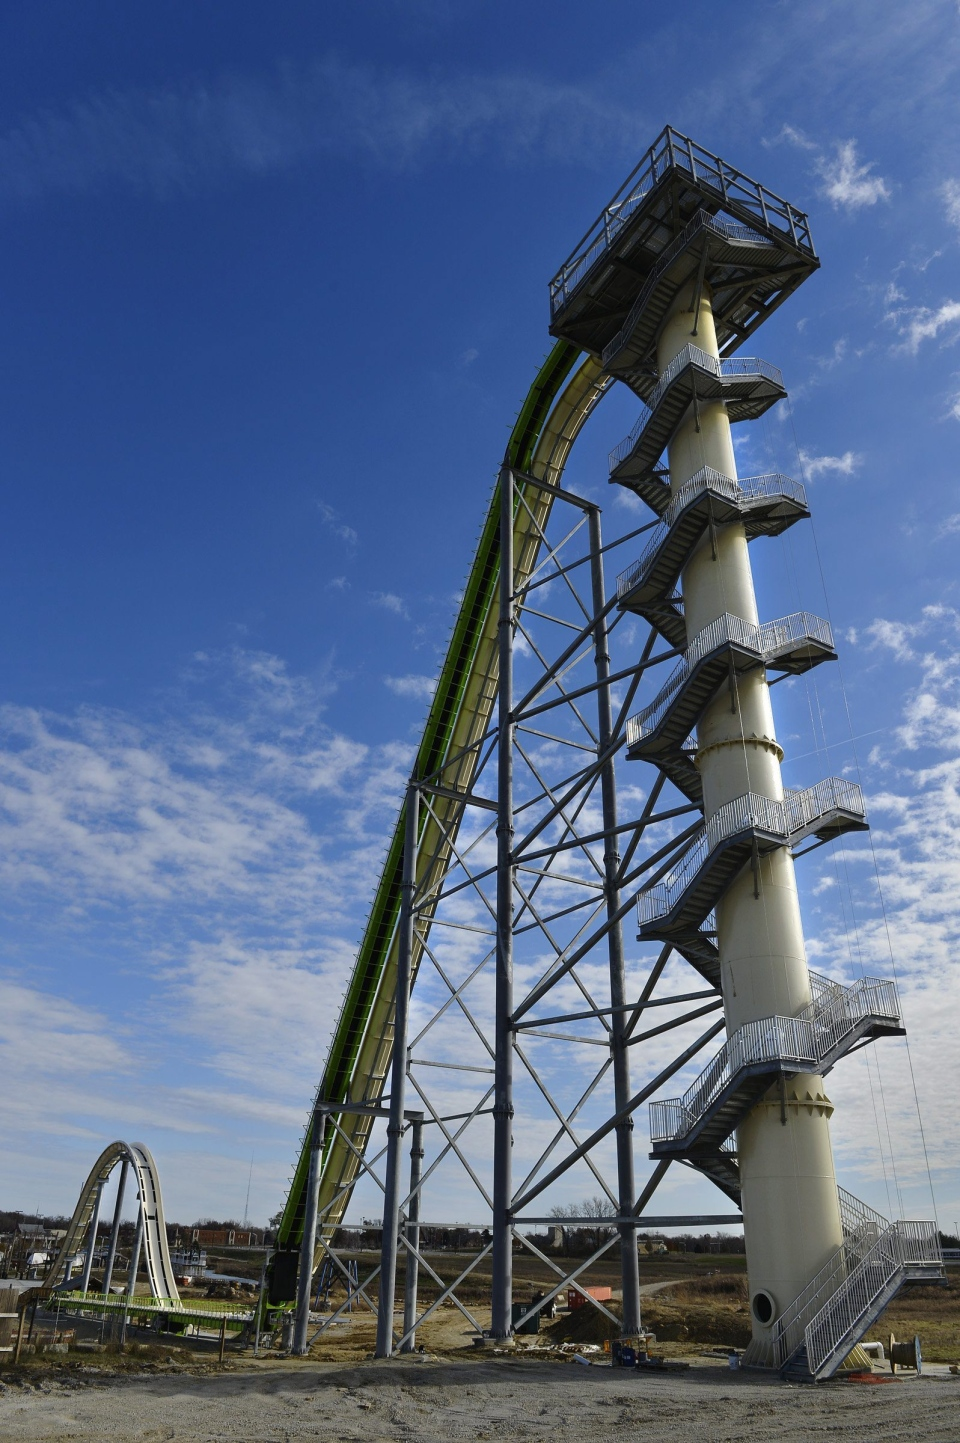 This Nov. 2013 file photo shows Schlitterbahn's new Verruckt speed slide/water coaster in Kansas City, Kan. (Jill Toyoshiba/The Kansas City Star)